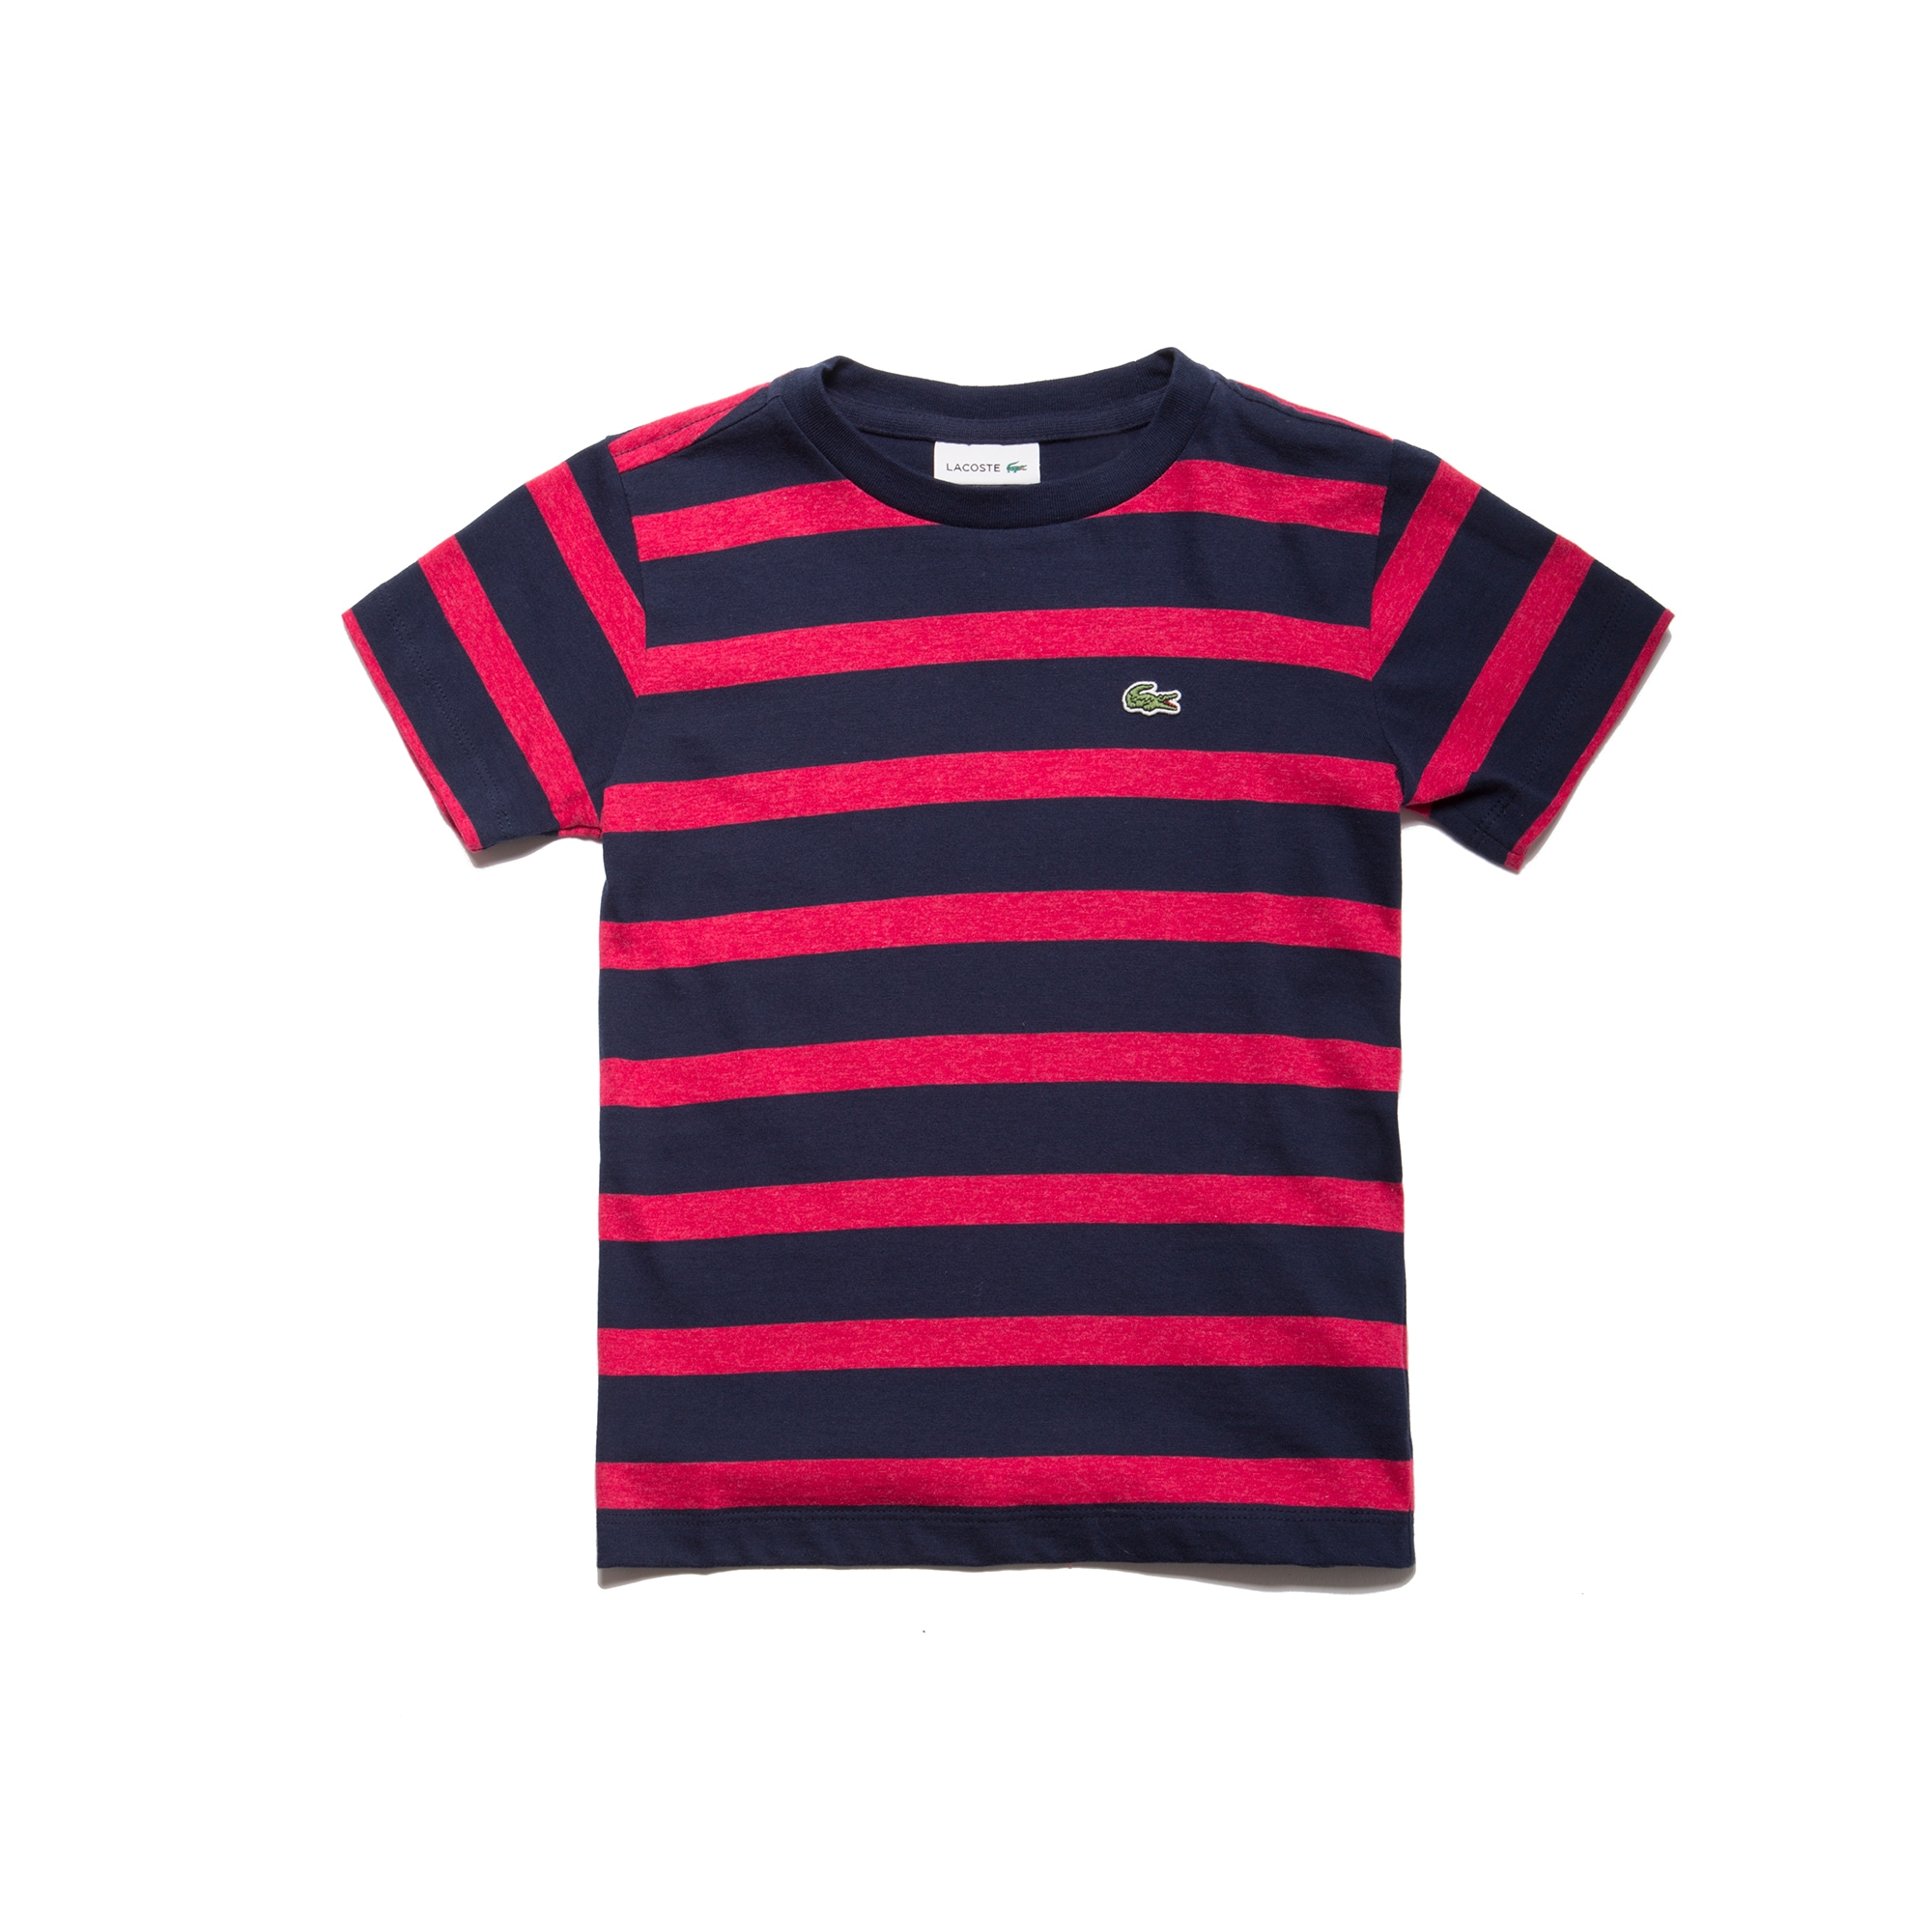 Boys' Striped Jersey T-shirt